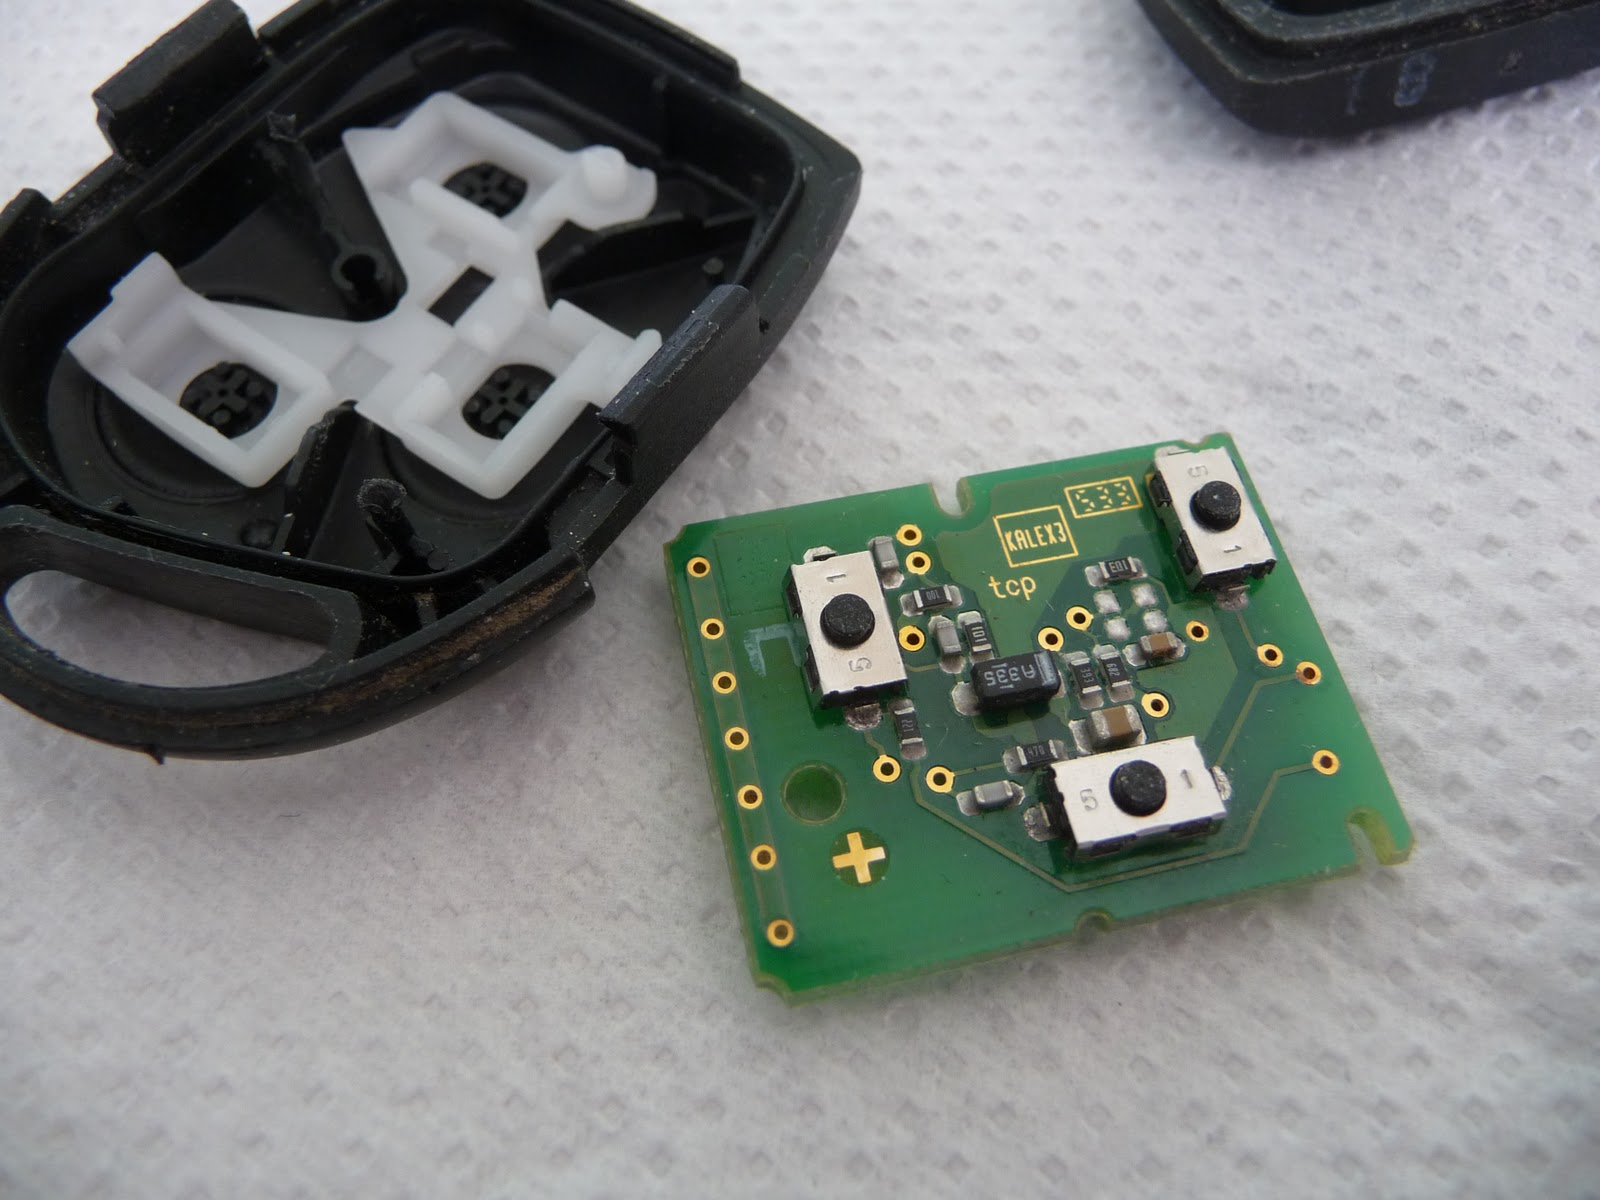 Gently pop the top peg out of the slot in the pcb to release it